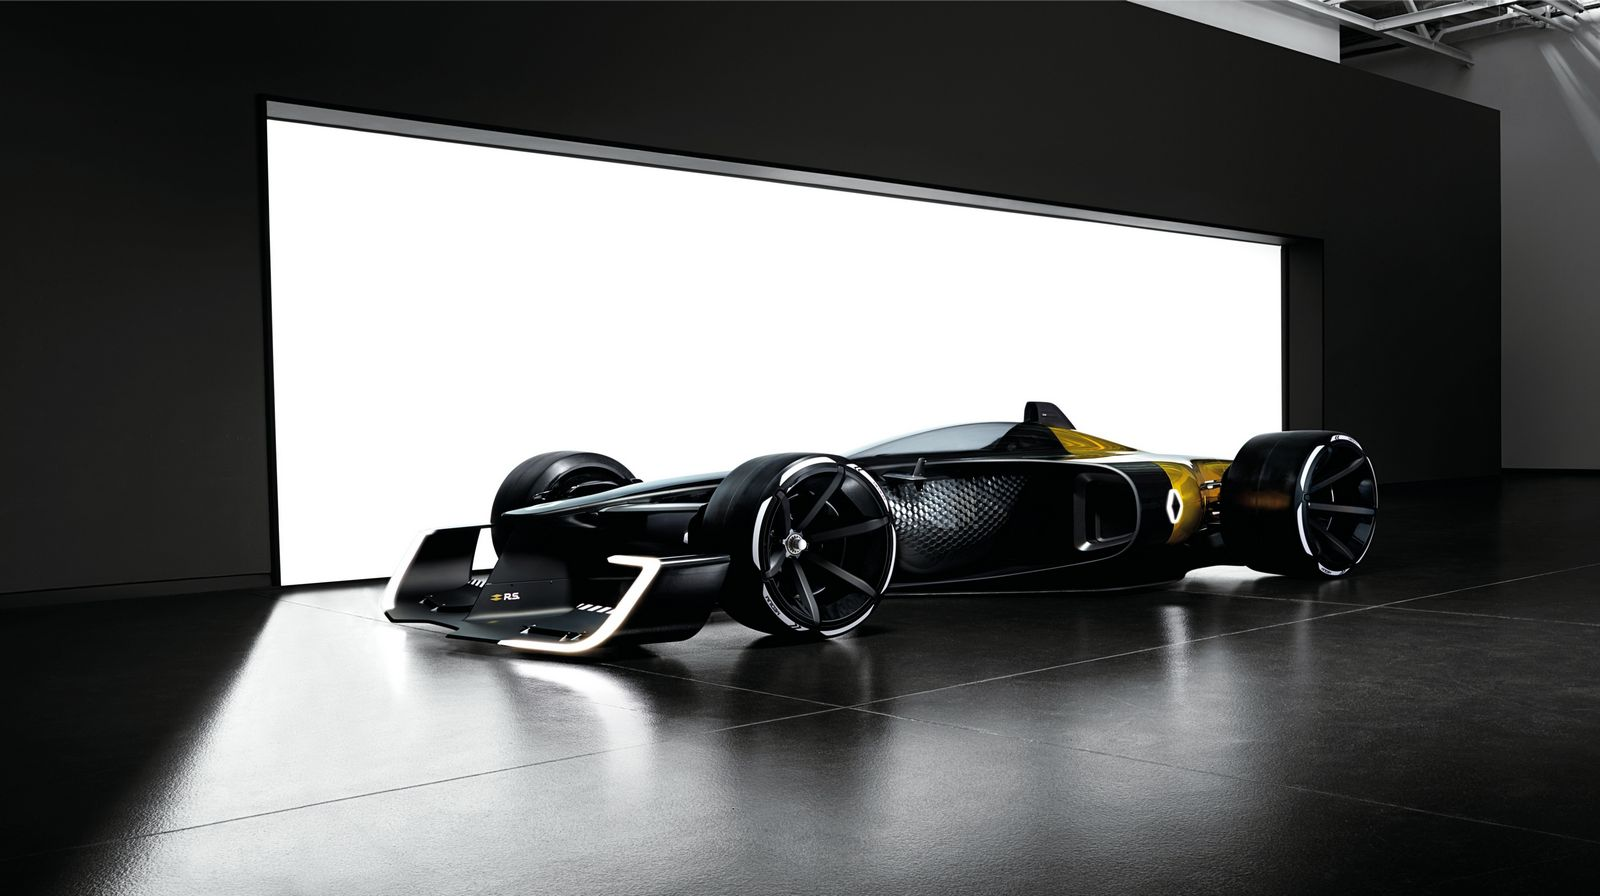 Renault RS 2027 Vision concept (4)